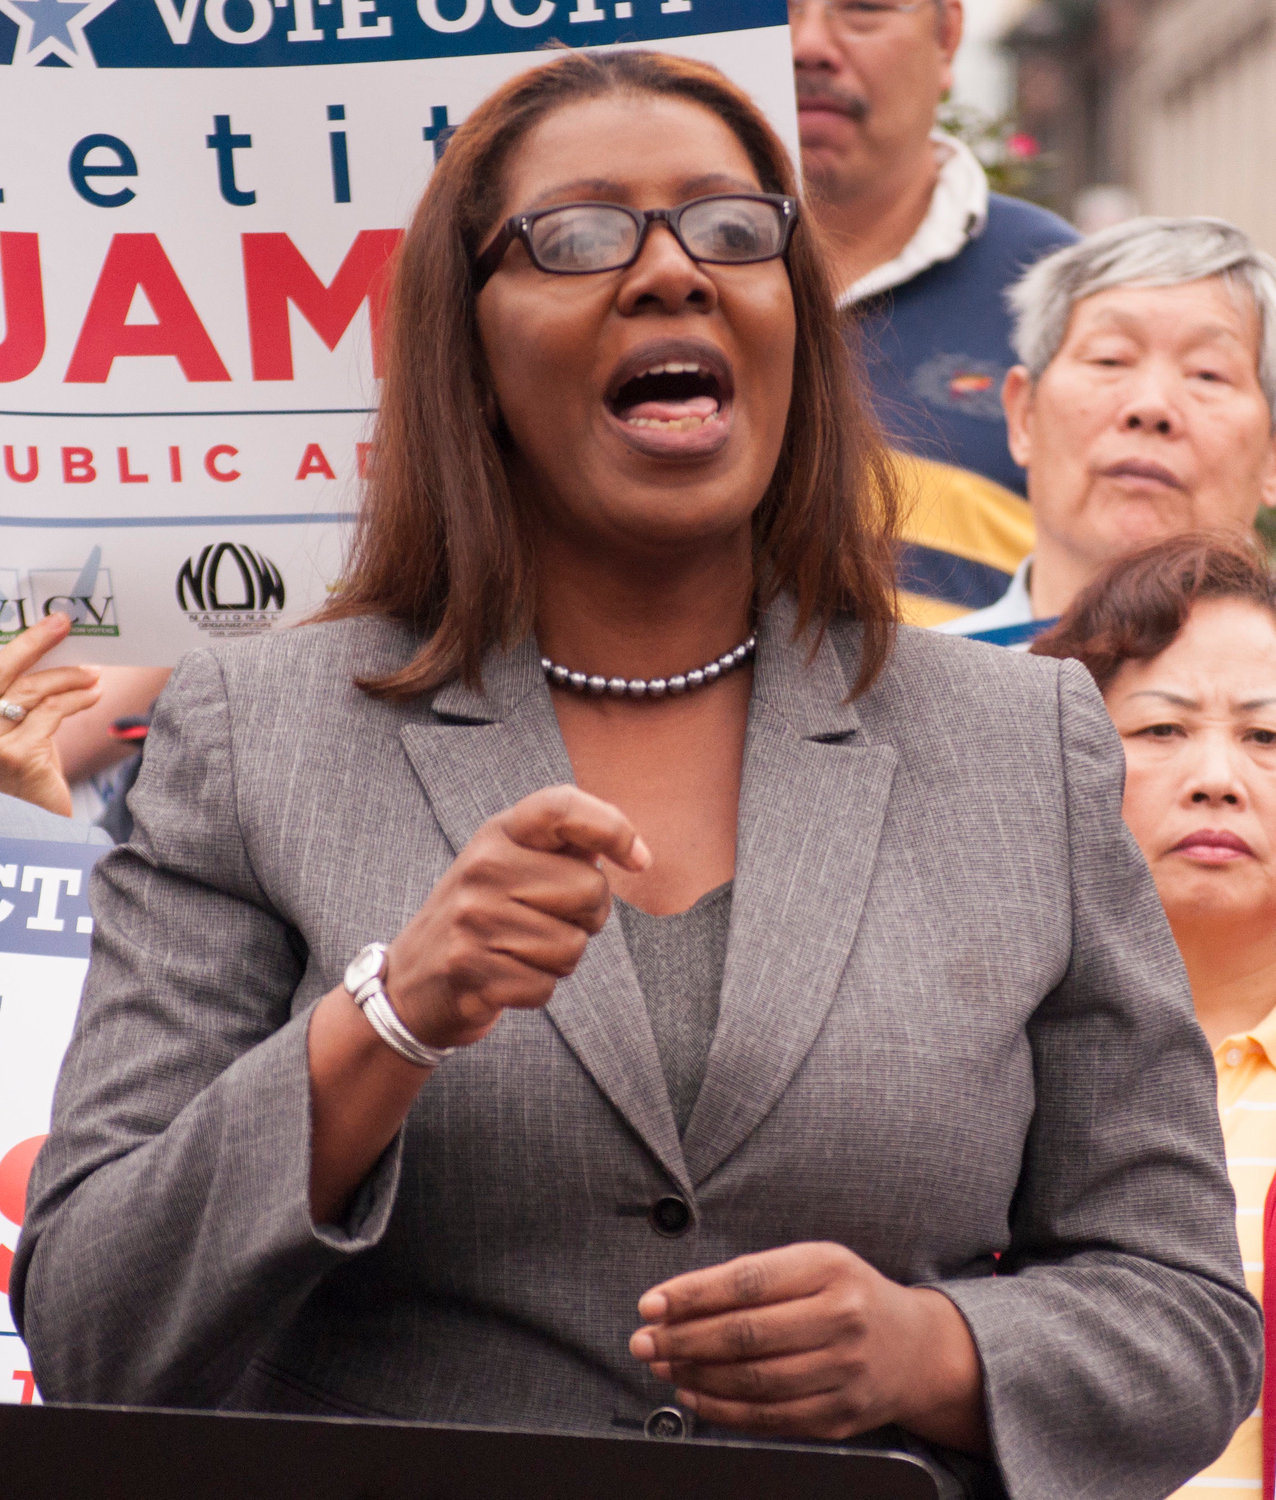 New York Attorney General Letitia James announced on June 10 that a Valley Stream couple had been sentenced for wage theft.